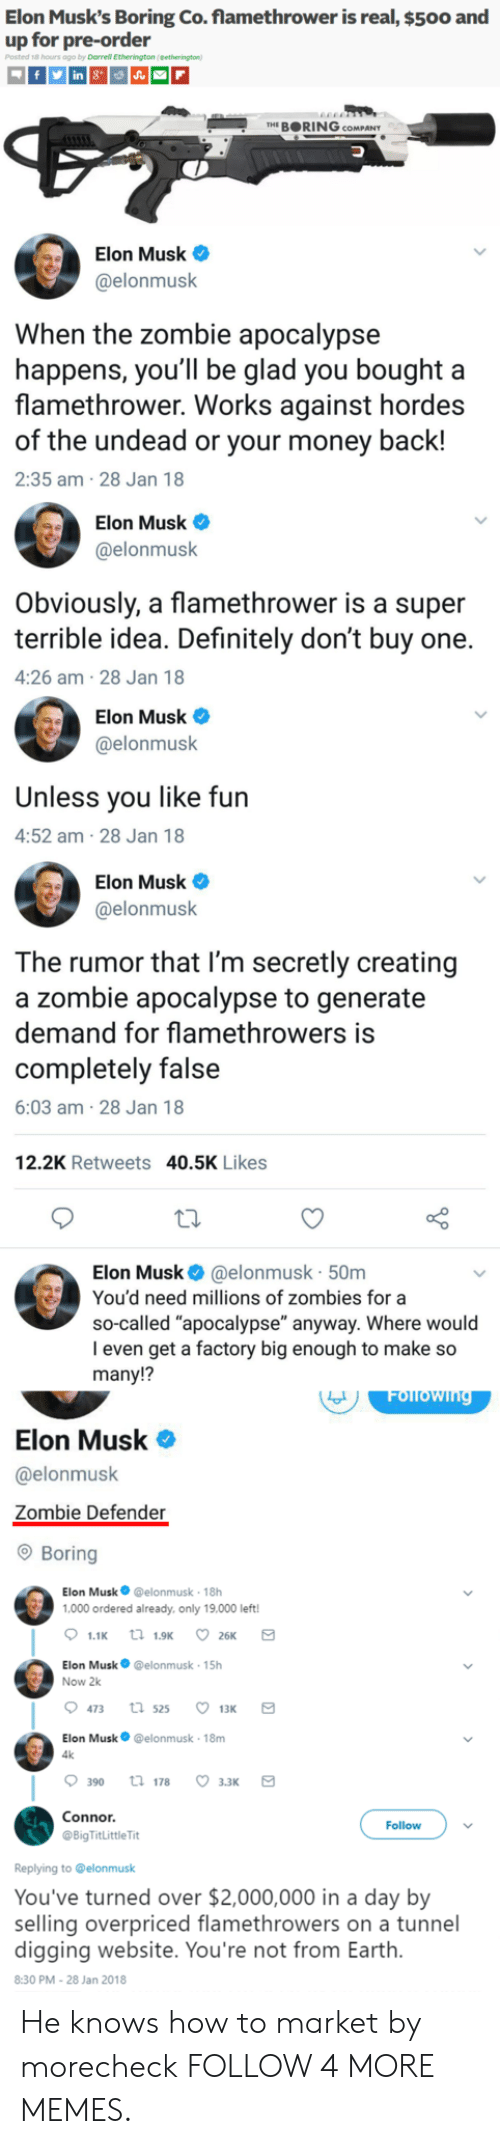 """flamethrower: Elon Musk's Boring Co. flamethrower is real, $500 and  up for pre-order  Darrell Etherington  THE BORING COMPANY  Elon Musk  @elonmusk  When the zombie apocalypse  happens, you'll be glad you bought a  flamethrower. Works against hordes  of the undead or your money back!  2:35 am 28 Jan 18  Elon Musk  @elonmusk  Obviously, a flamethrower is a super  terrible idea. Definitely don't buy one.  4:26 am-28 Jan 18  Elon Musk  @elonmusk  Unless you like fun  4:52 am-28 Jan 18  Elon Musk  @elonmusk  The rumor that I'm secretly creating  a zombie apocalypse to generate  demand for flamethrowers is  completely false  6:03 am-28 Jan 18  12.2K Retweets 40.5K Likes  Elon Musk  @elonmusk 50m  You'd need millions of zombies for a  so-called """"apocalypse"""" anyway. Where would  I even get a factory big enough to make so  many!?  Folfowing  Elon Musk  @elonmusk  Zombie Defender  Boring  Elon Musk @elonmusk 18h  1,000 ordered al ready, only 19.000 left!  t 1.9K  26K  1.1K  Elon Musk  @elonmusk 15h  Now 2k  473  t 525  13K  Elon Musk@elonmusk 18m  4k  390  ti 178  3.зк  Connor.  Follow  @BigTitLittle Tit  Replying to @elonmusk  You've turned over $2,000,000 in a day by  selling overpriced flamethrowers on a tunnel  digging website. You're not from Earth.  8:30 PM - 28 Jan 2018 He knows how to market by morecheck FOLLOW 4 MORE MEMES."""